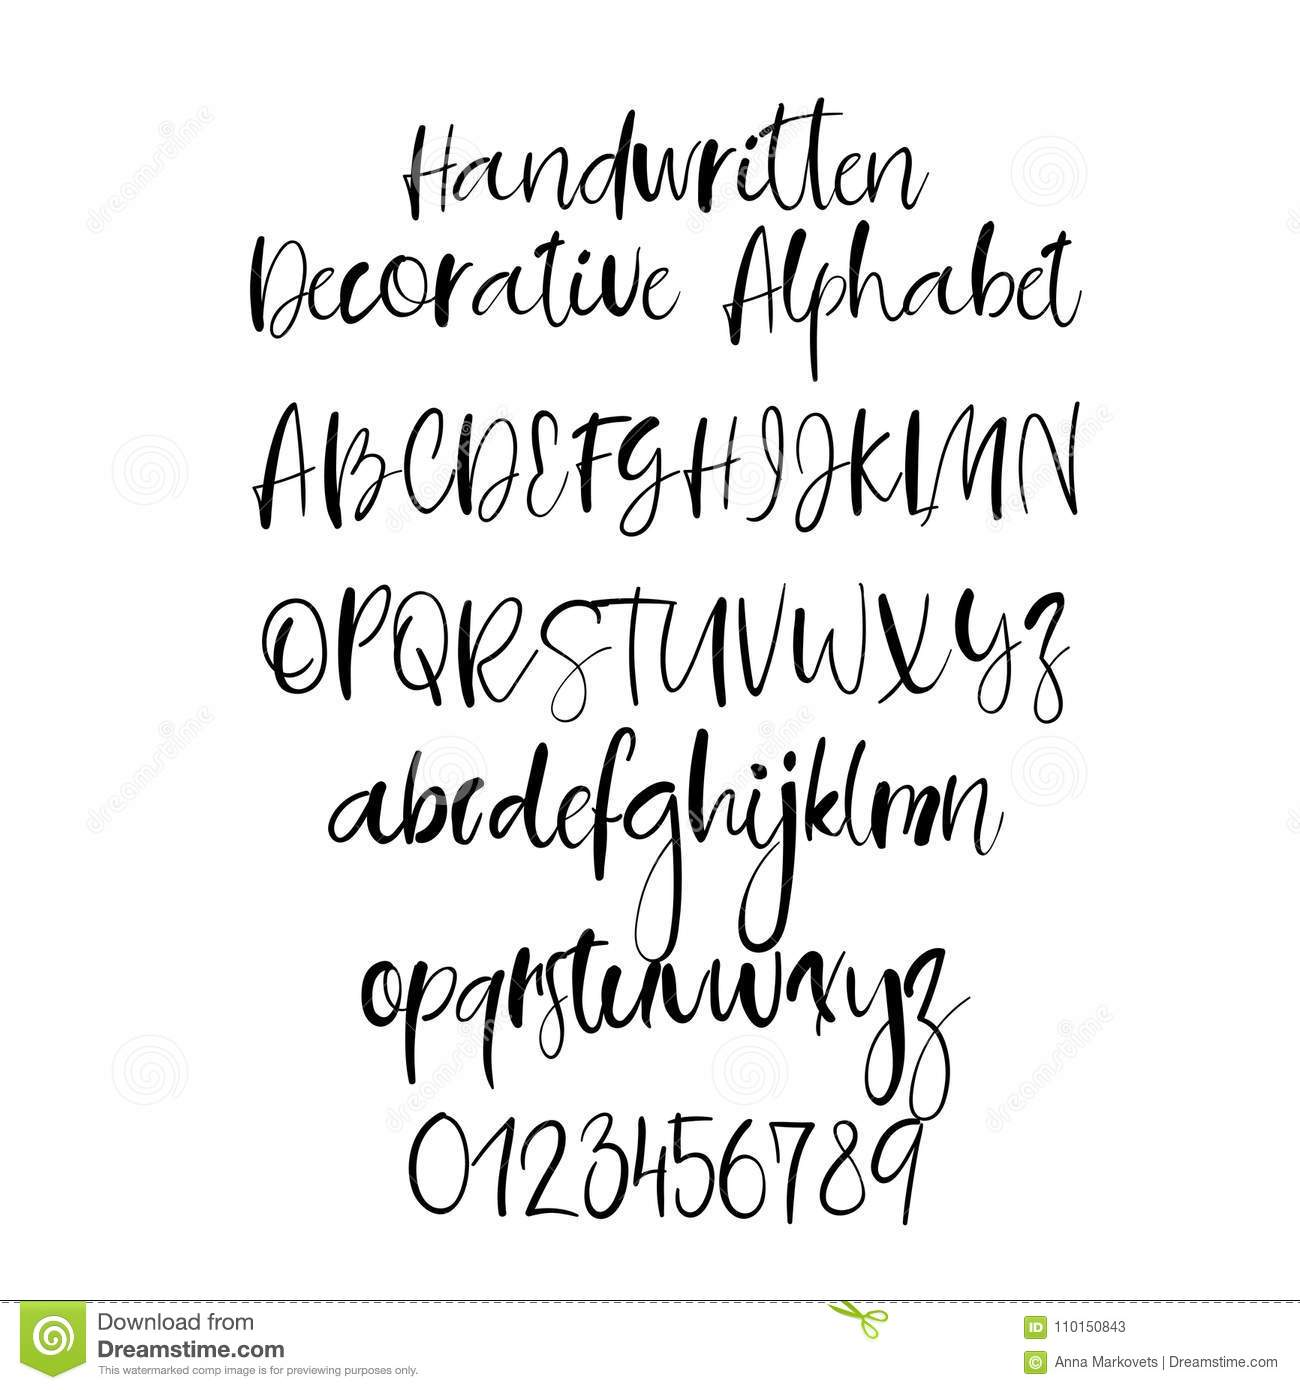 Download Decorative Hand Drawn Alphabet Handwritten Brush Font Modern Calligraphy ABC Stock Vector